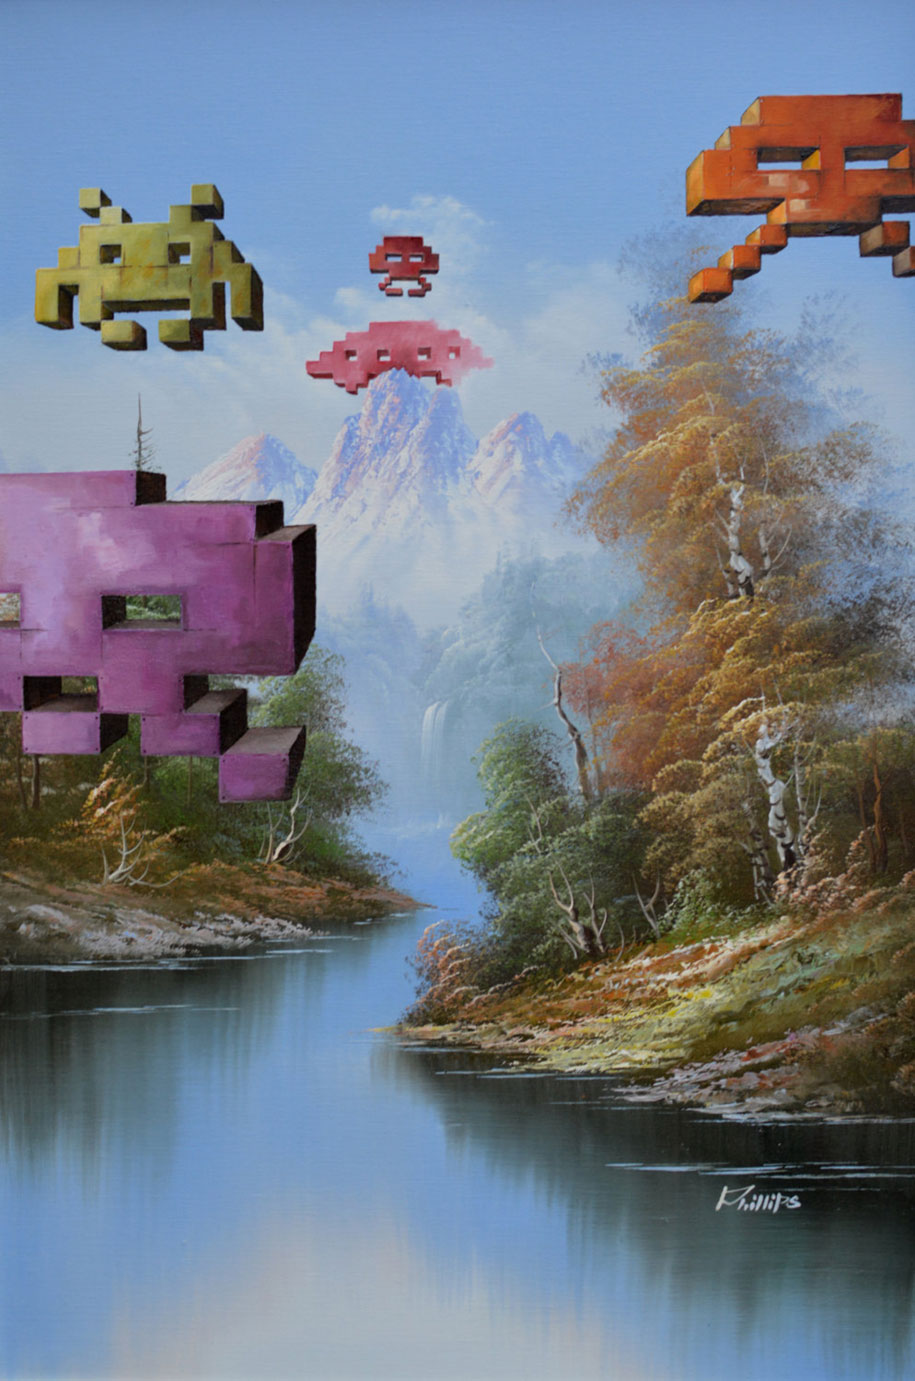 pop-culture-characters-additions-thrift-store-paintings-dave-pollot-16